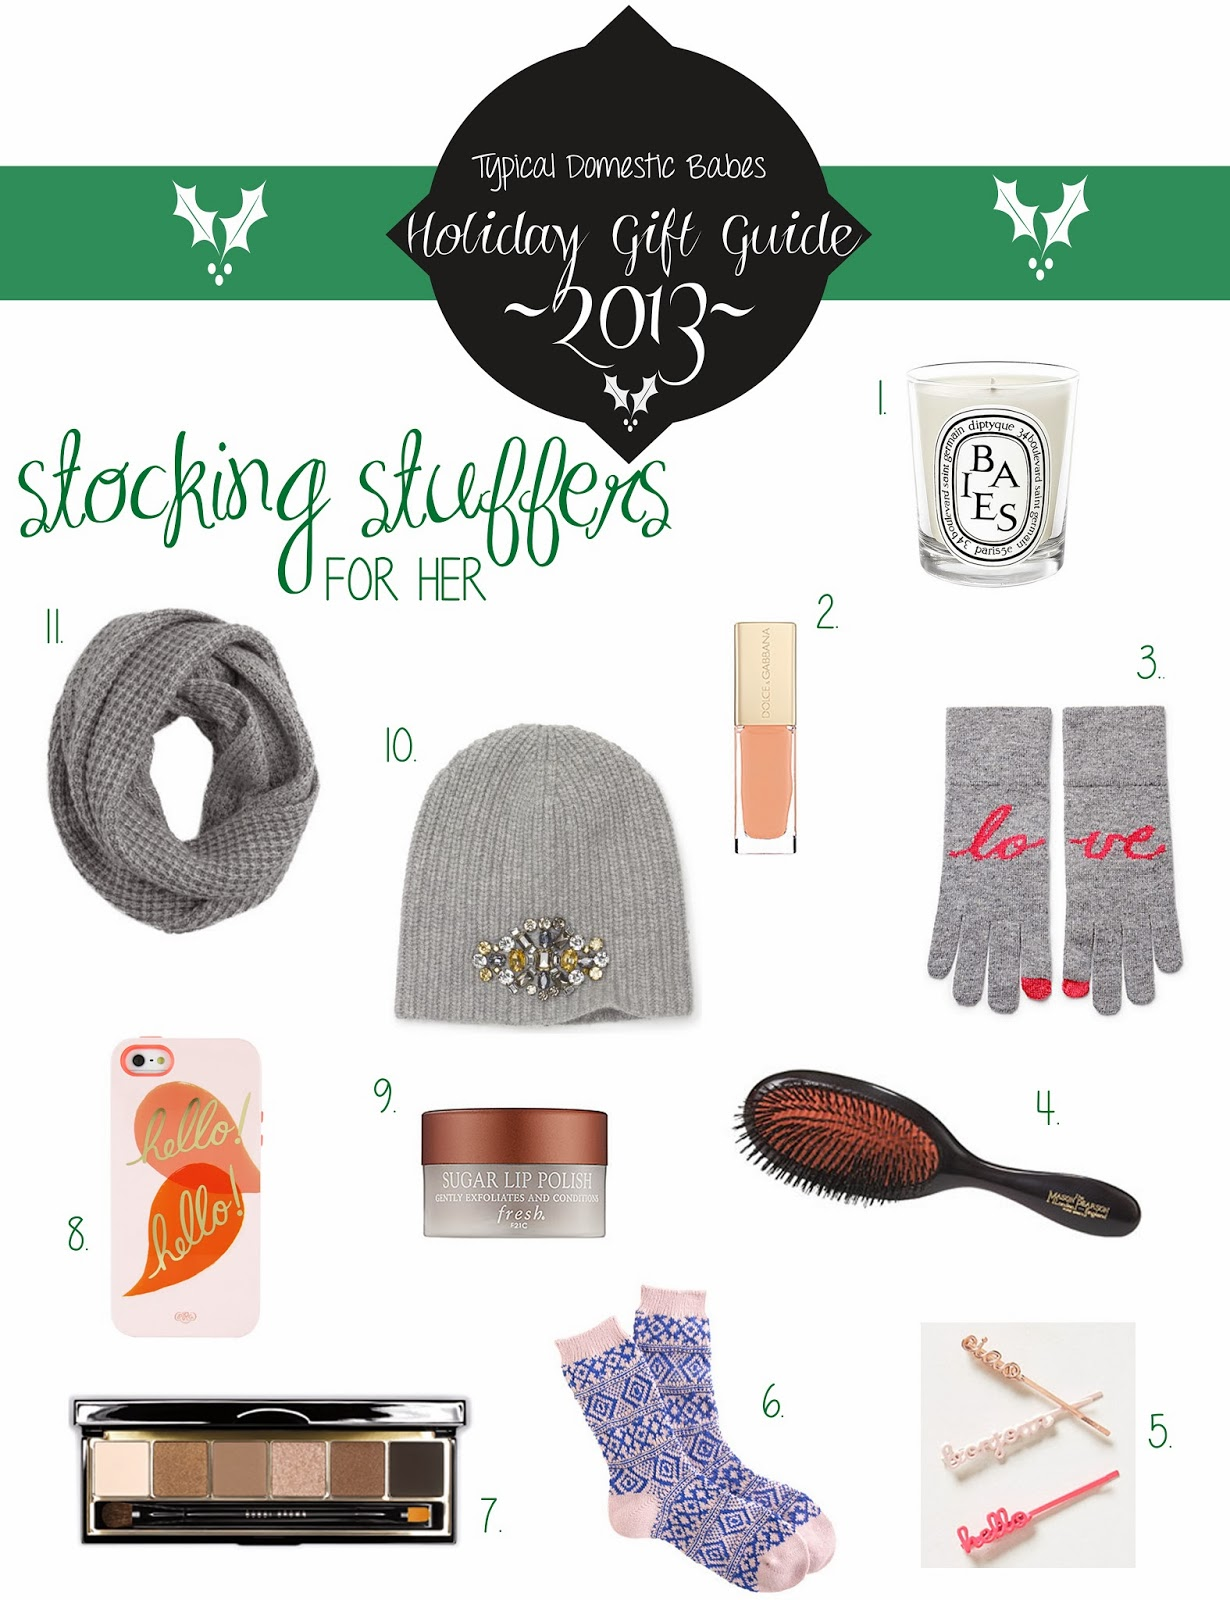 Typical Domestic Babe Holiday Gift Guide Volume Iv